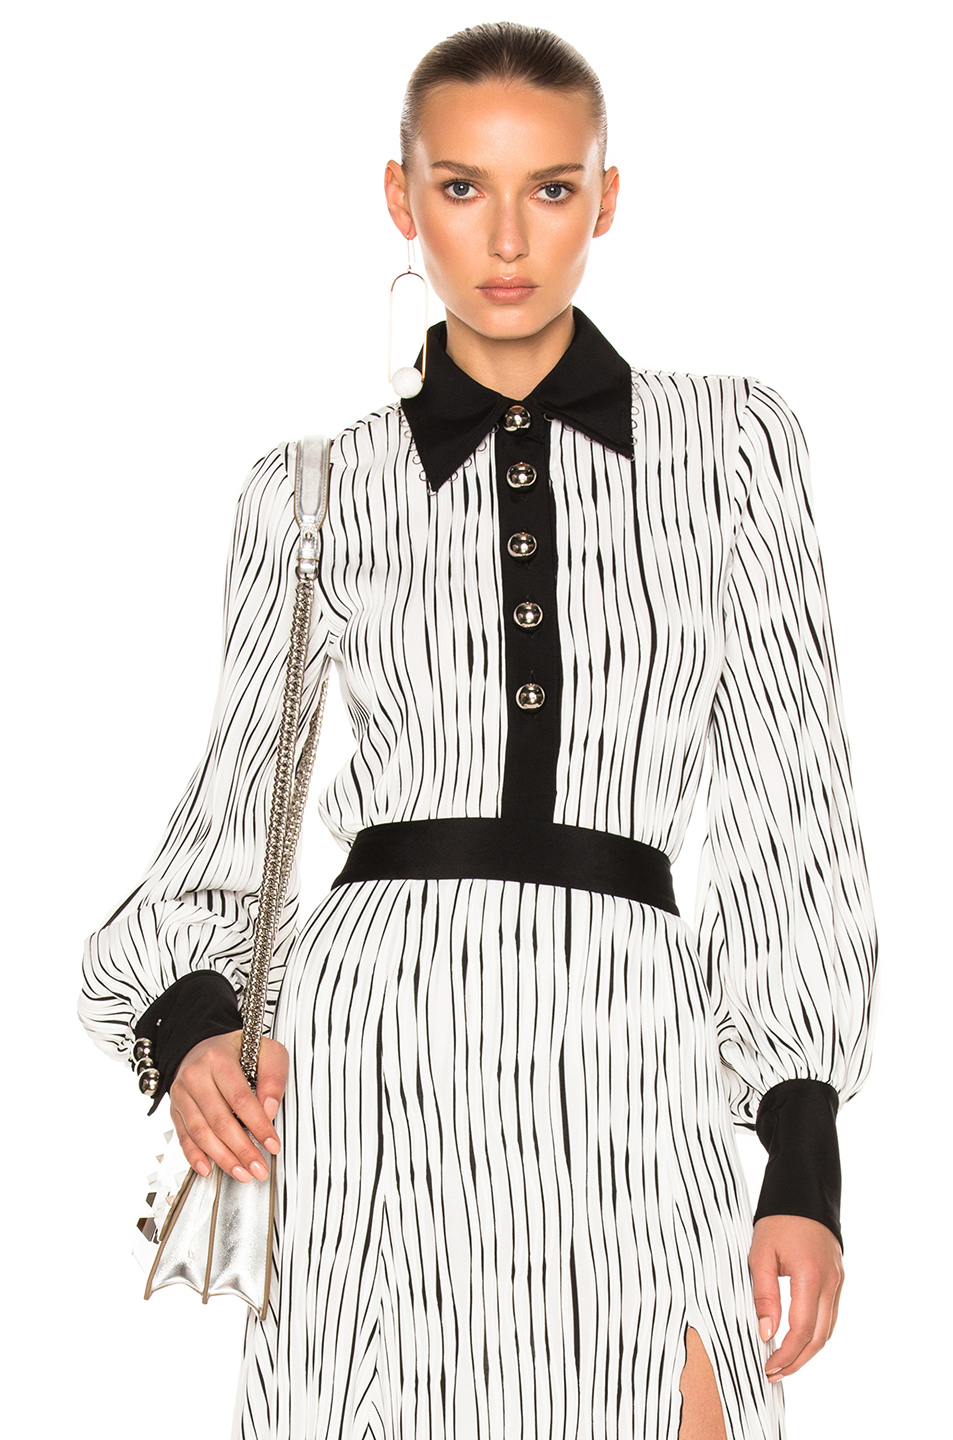 Prabal Gurung Wavy Rib Jersey Polo Blouse in Black,Stripes,White